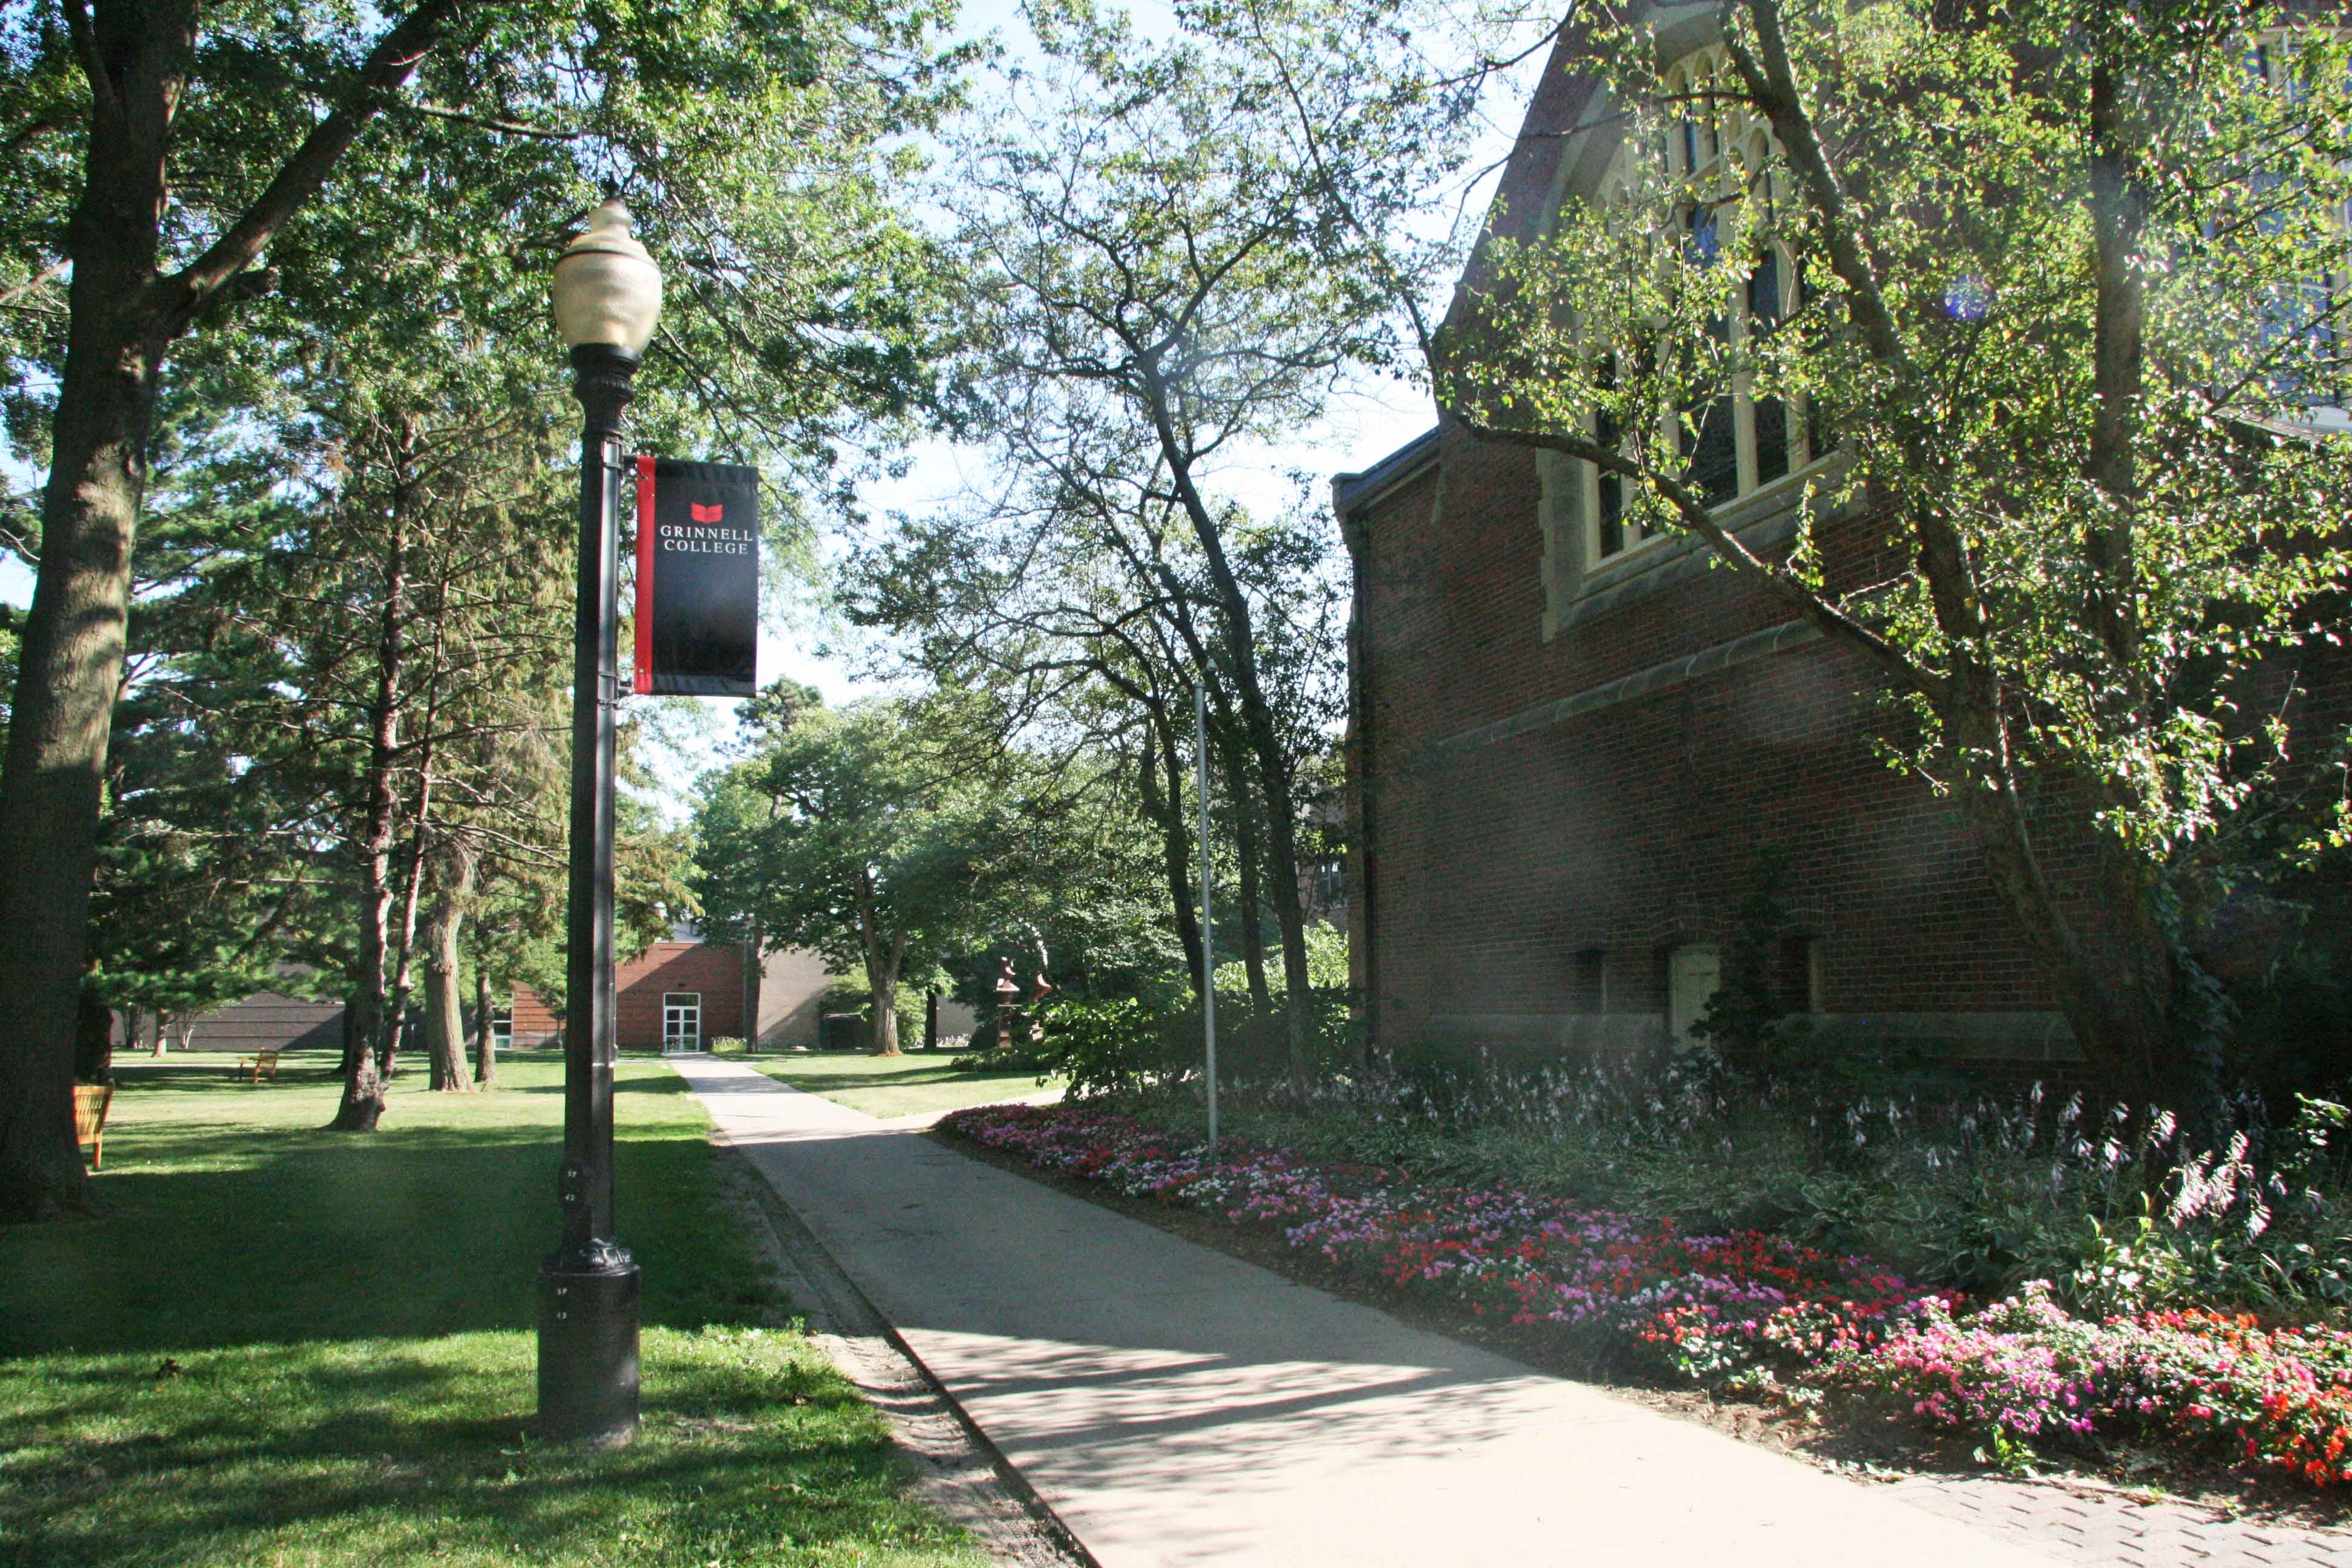 Grinnell College campus and neighborhood - beautiful  Town is all